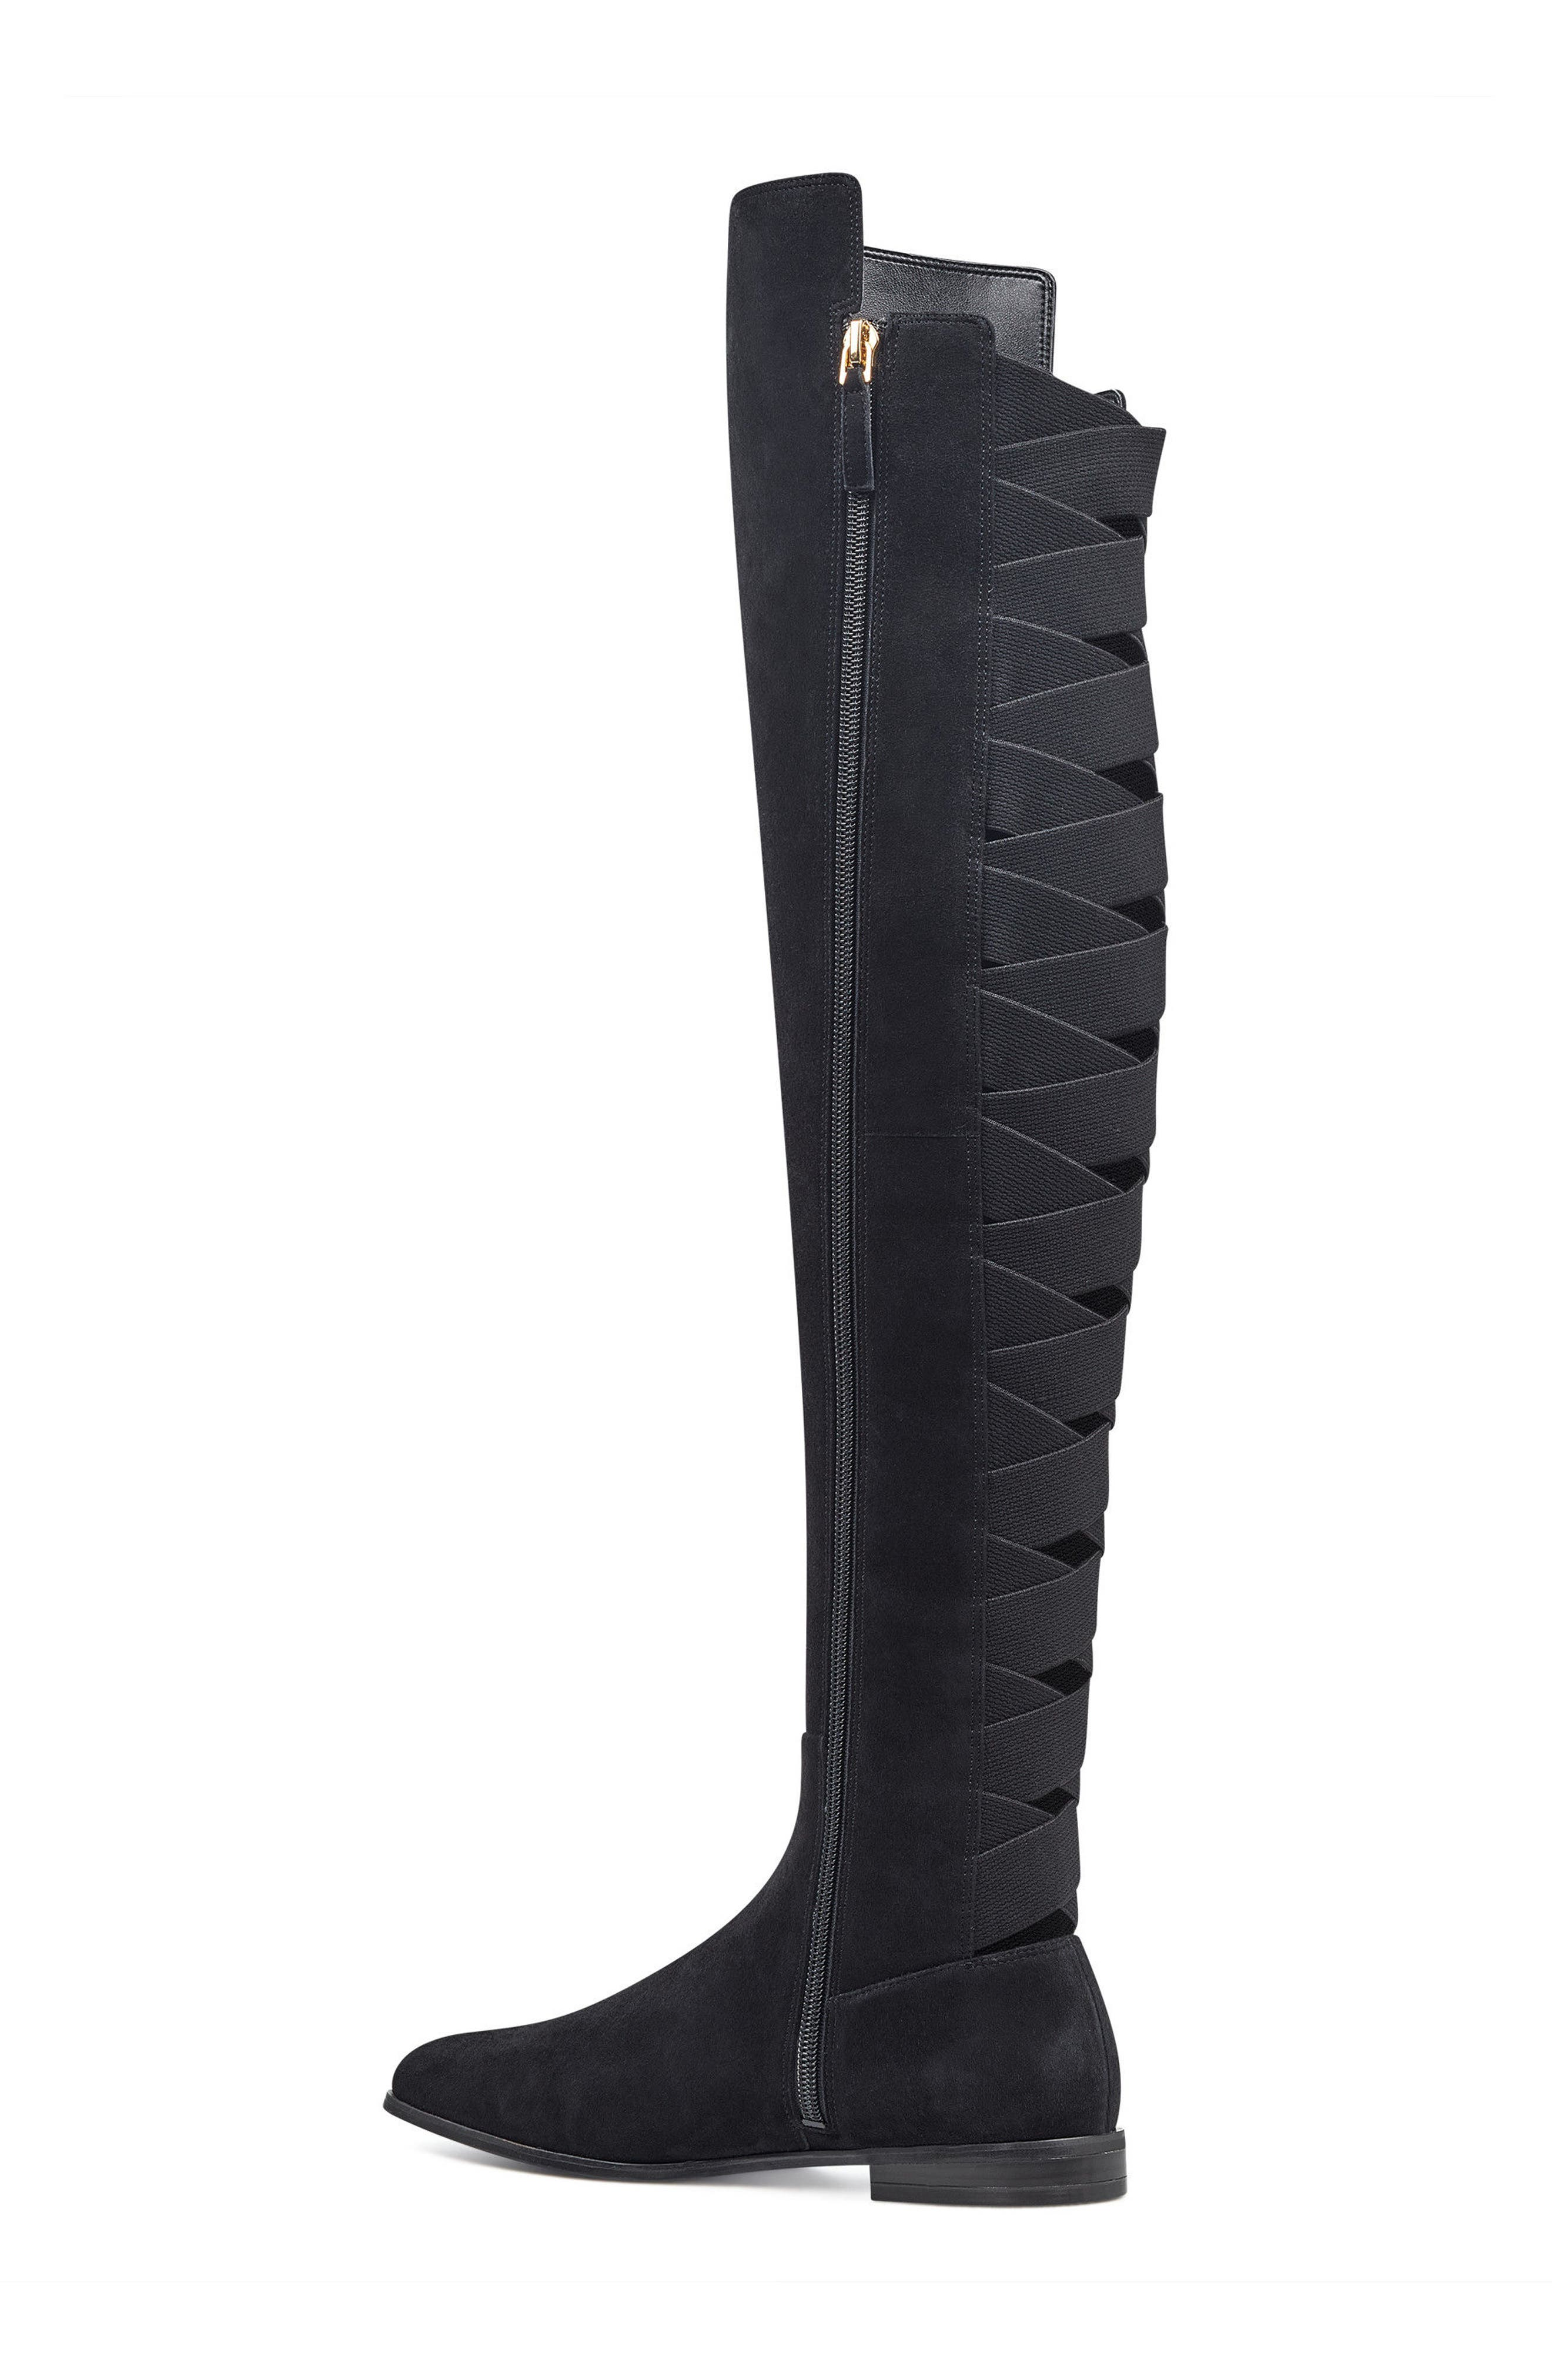 NINE WEST,                             Eltynn Over the Knee Boot,                             Alternate thumbnail 2, color,                             001